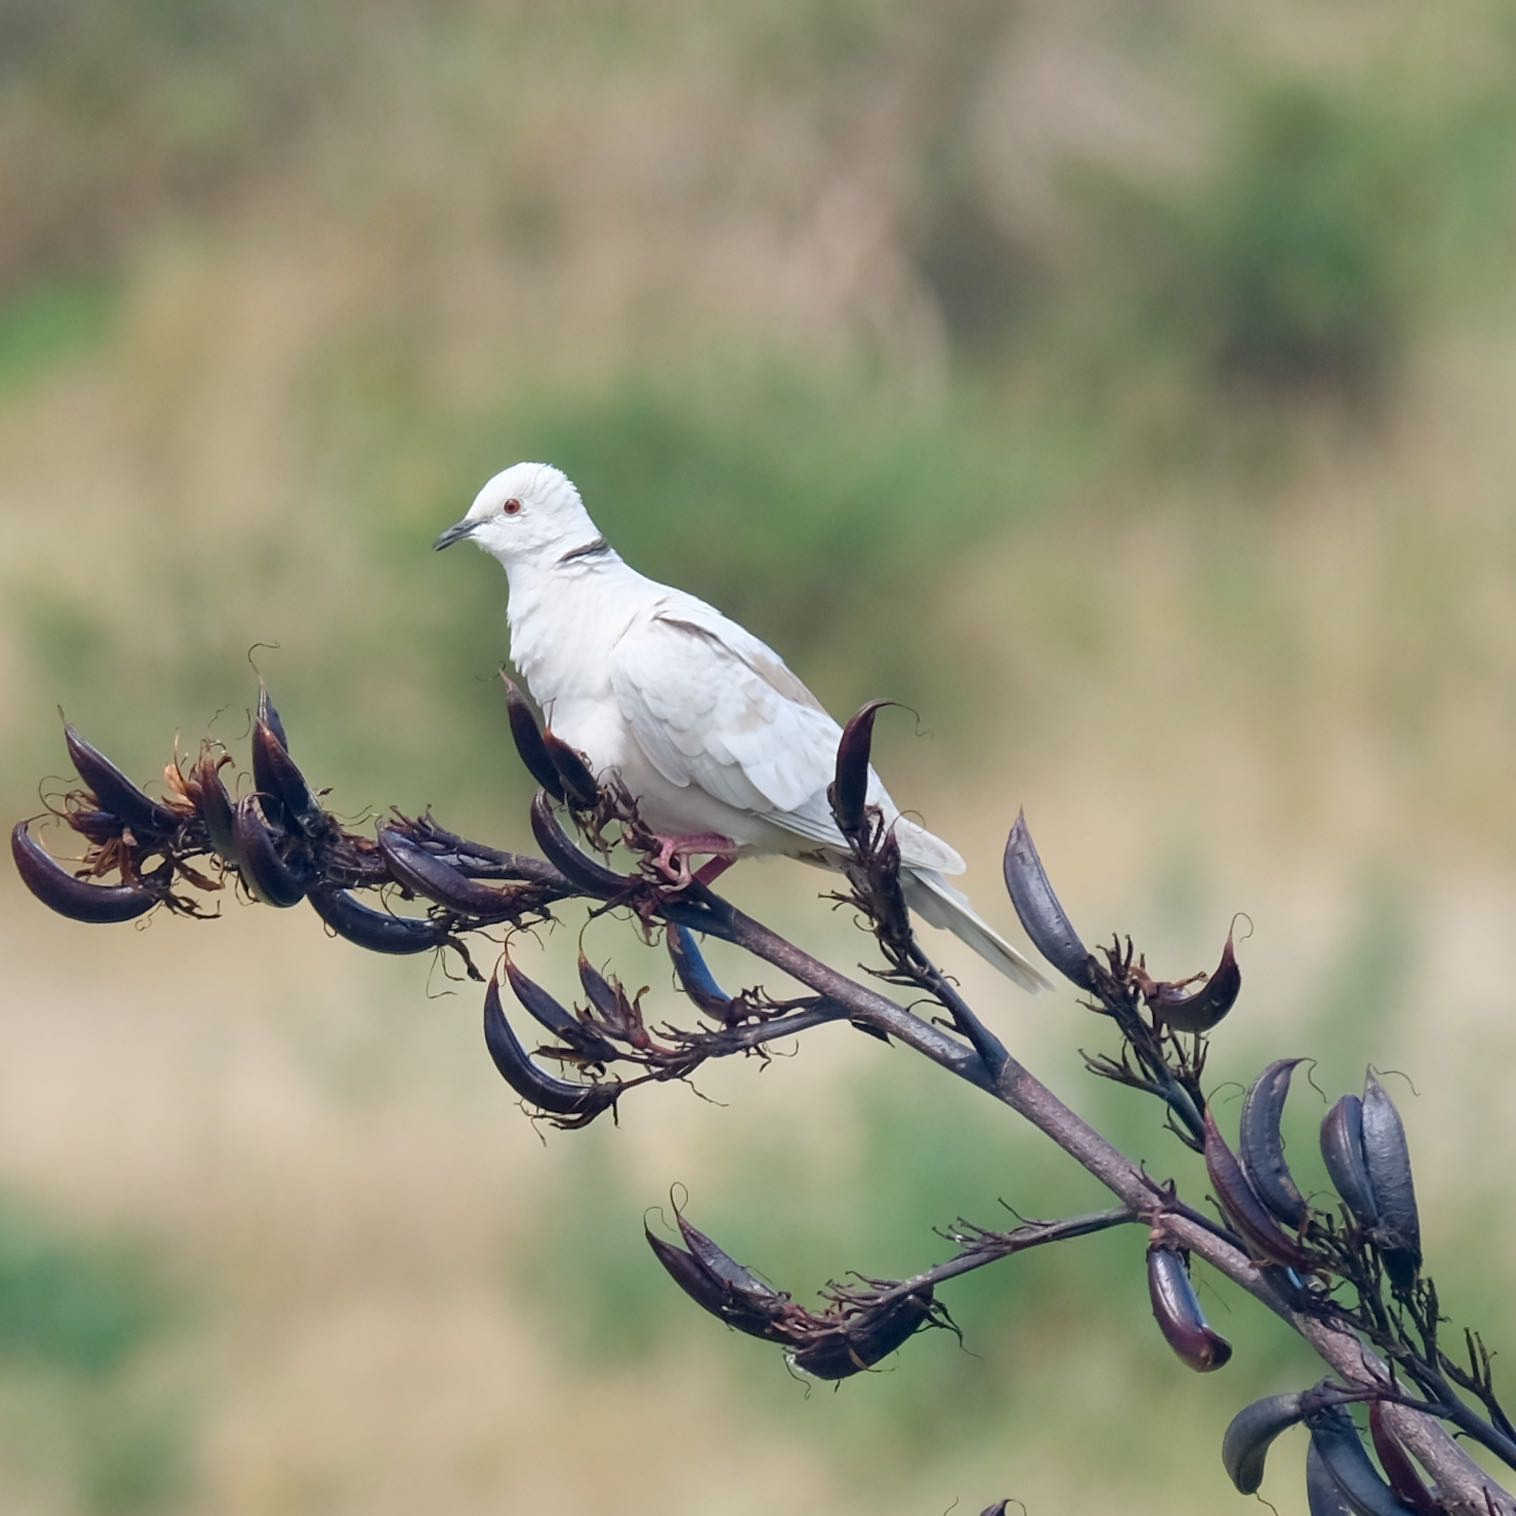 White dove on a flax spear. The dove has a black band of feathers on its neck.